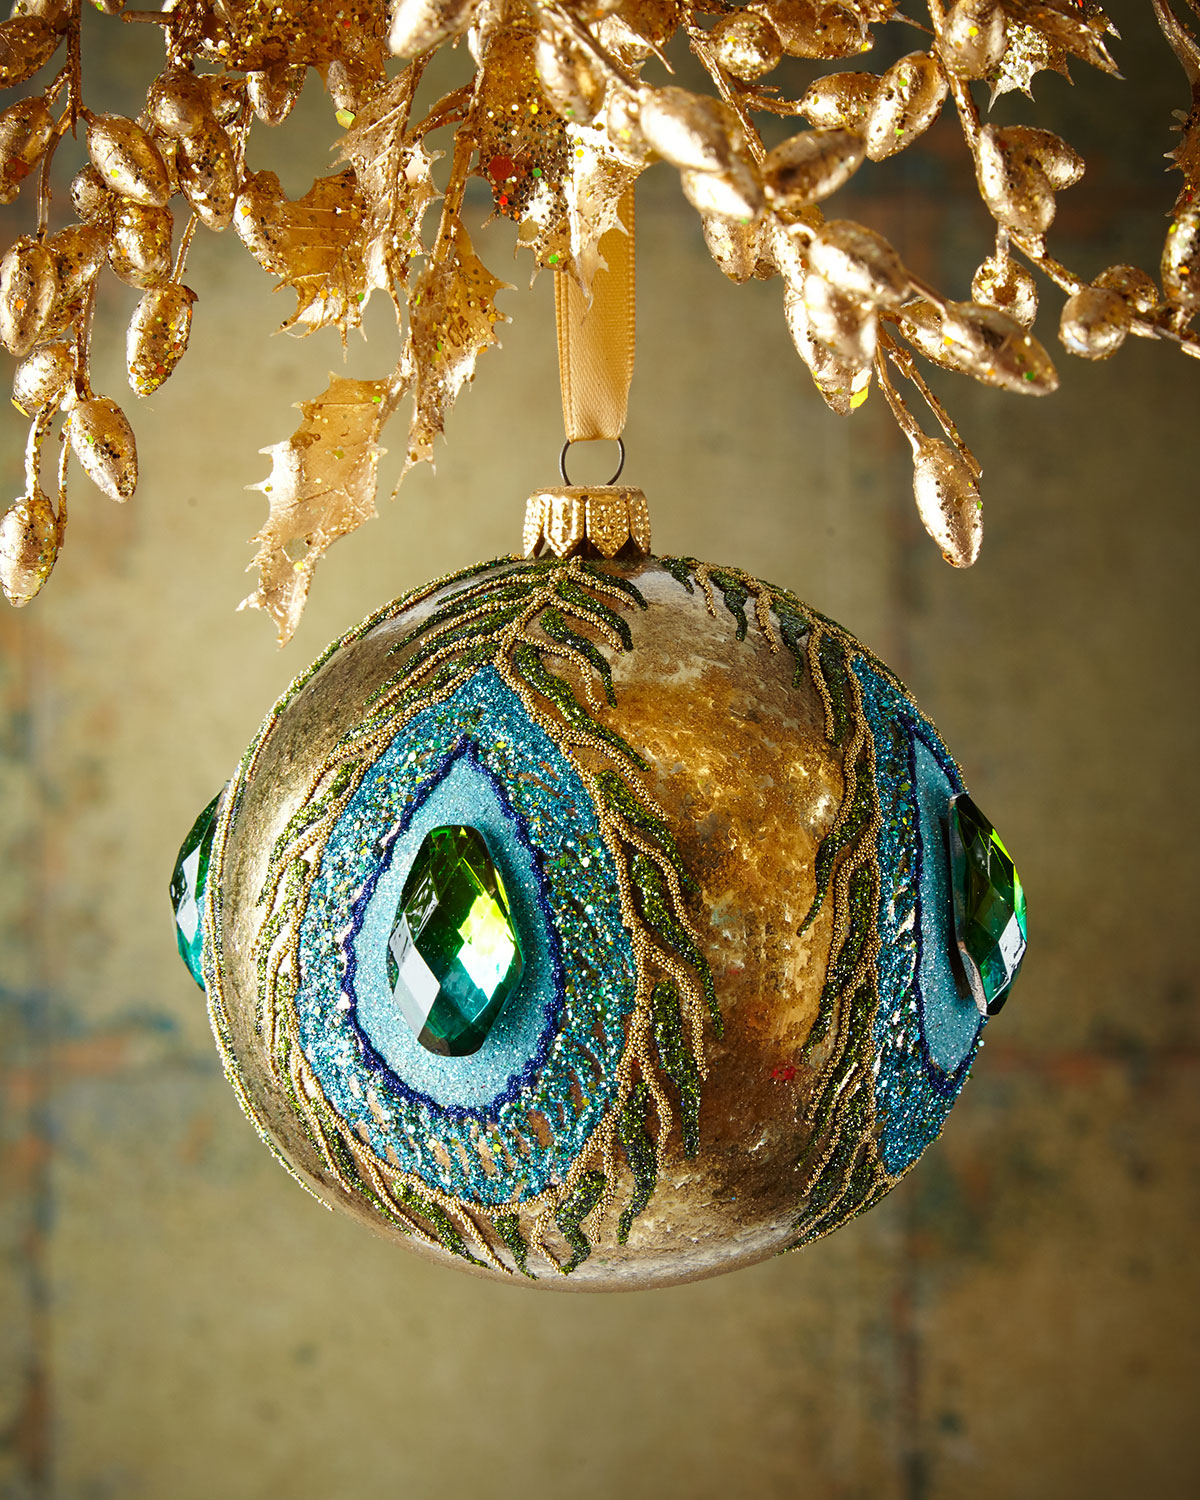 Gold Glassy Peacock Glass Ball Christmas Ornament | Neiman Marcus